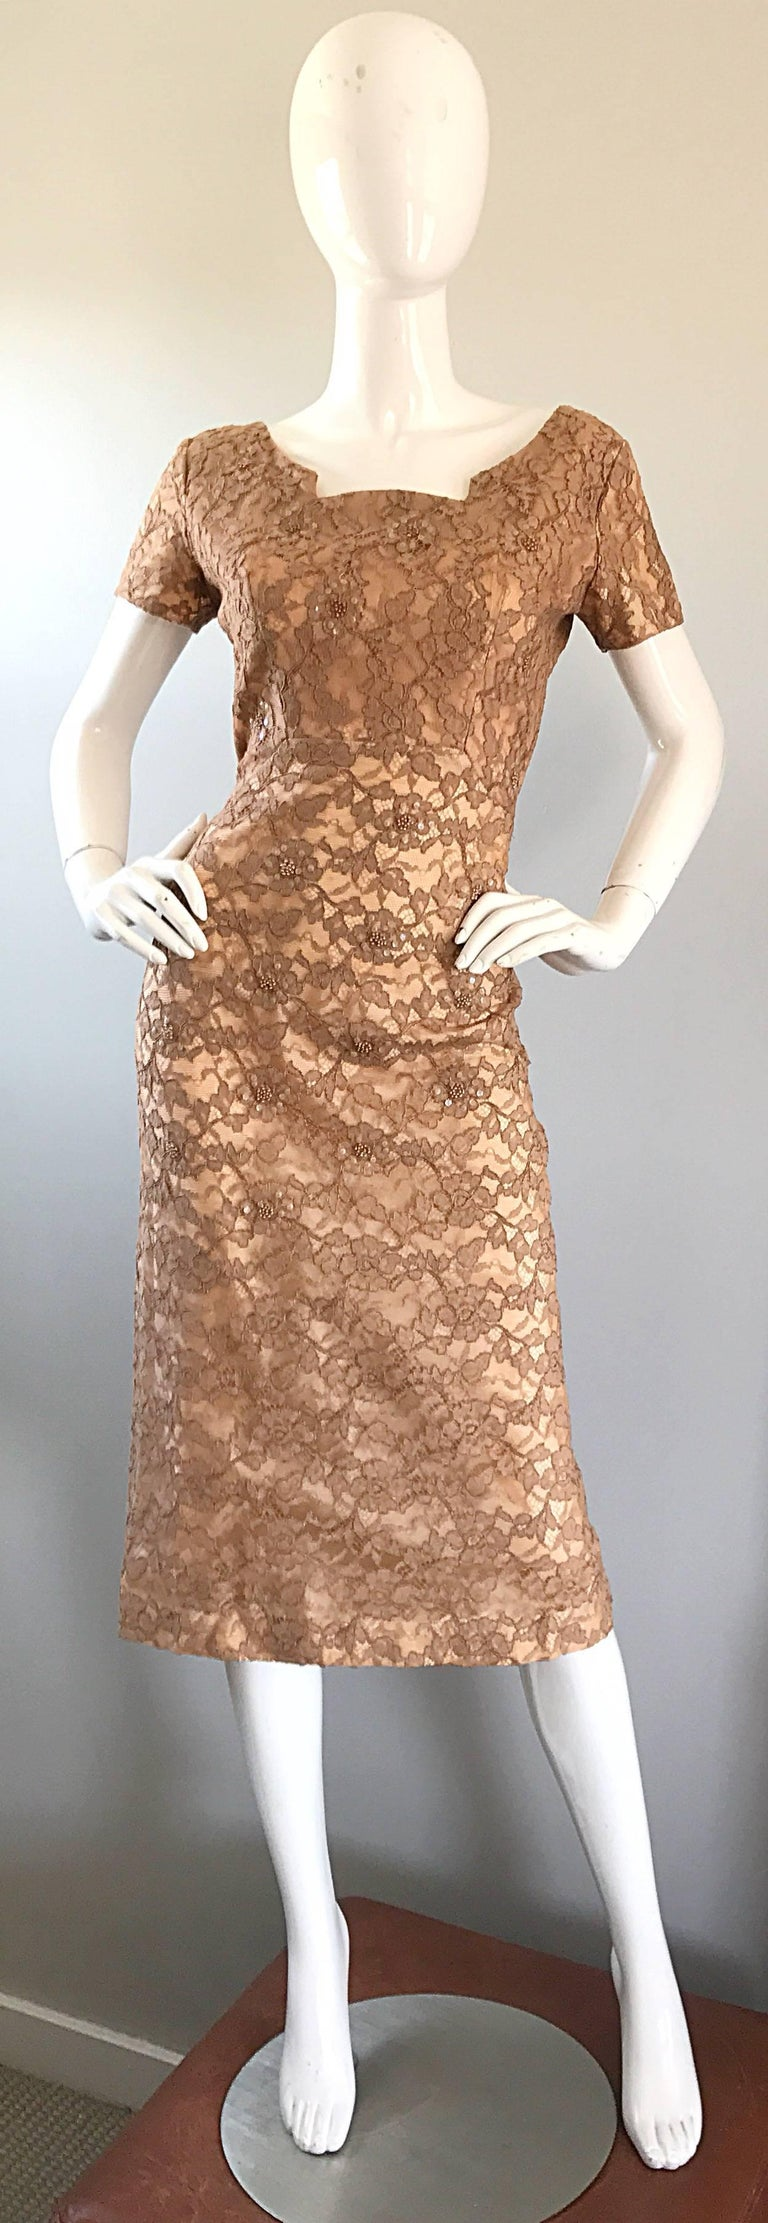 Gorgeous 1950s demi couture nude, tank and beige tea length silk lace cocktail dress! Impeccable construction, with so much heavy attention to detail. Fitted bodice features hundreds of hand-sewn iridescent sequins and beads throughout. Skirt